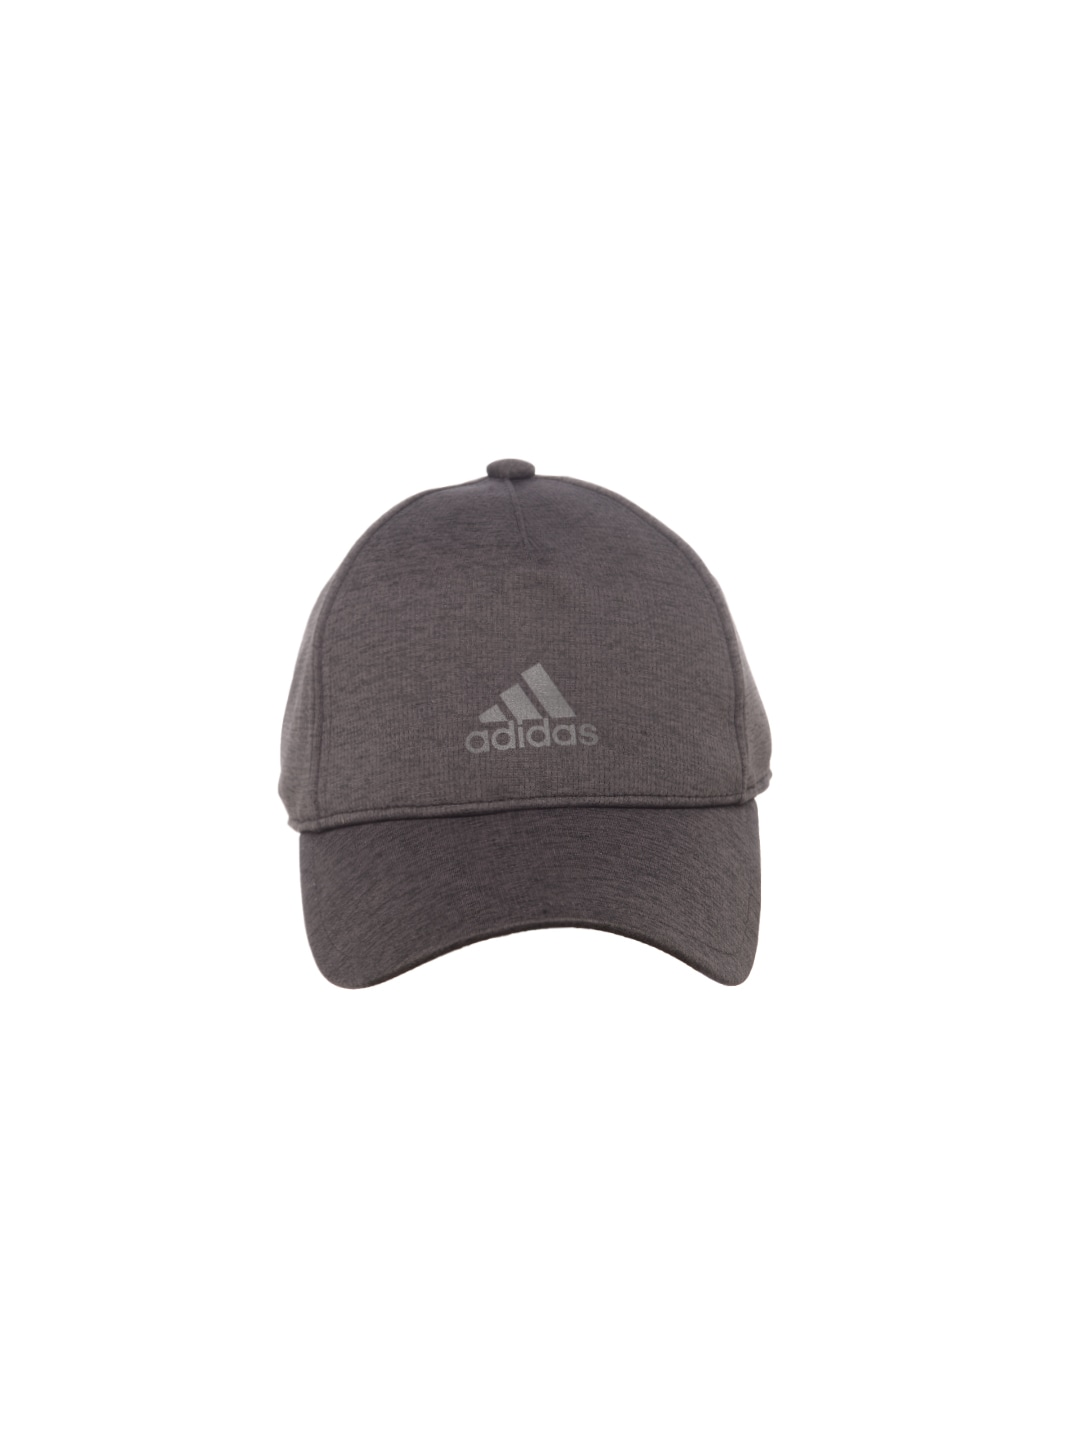 3734344a56d Men Sports Adidas Caps - Buy Men Sports Adidas Caps online in India